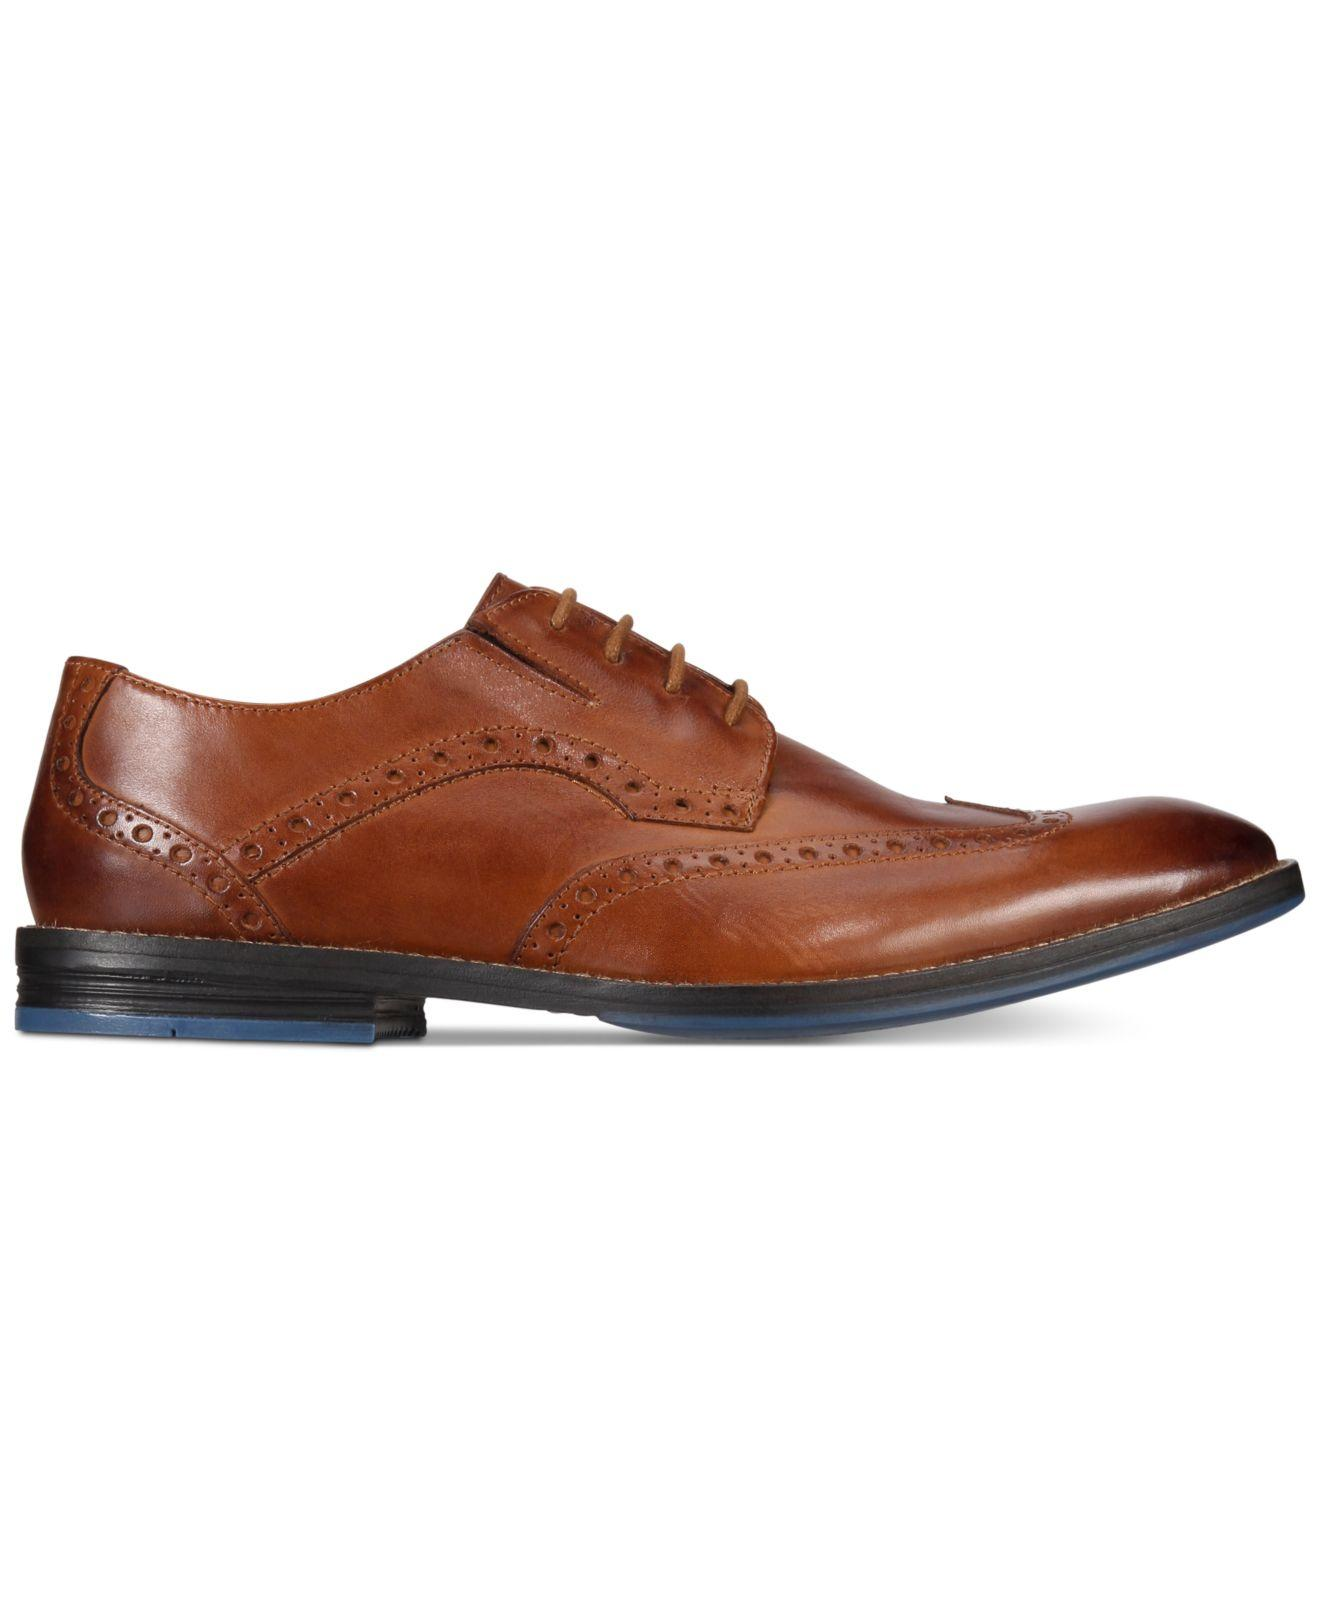 Calbirate Mens Shoes